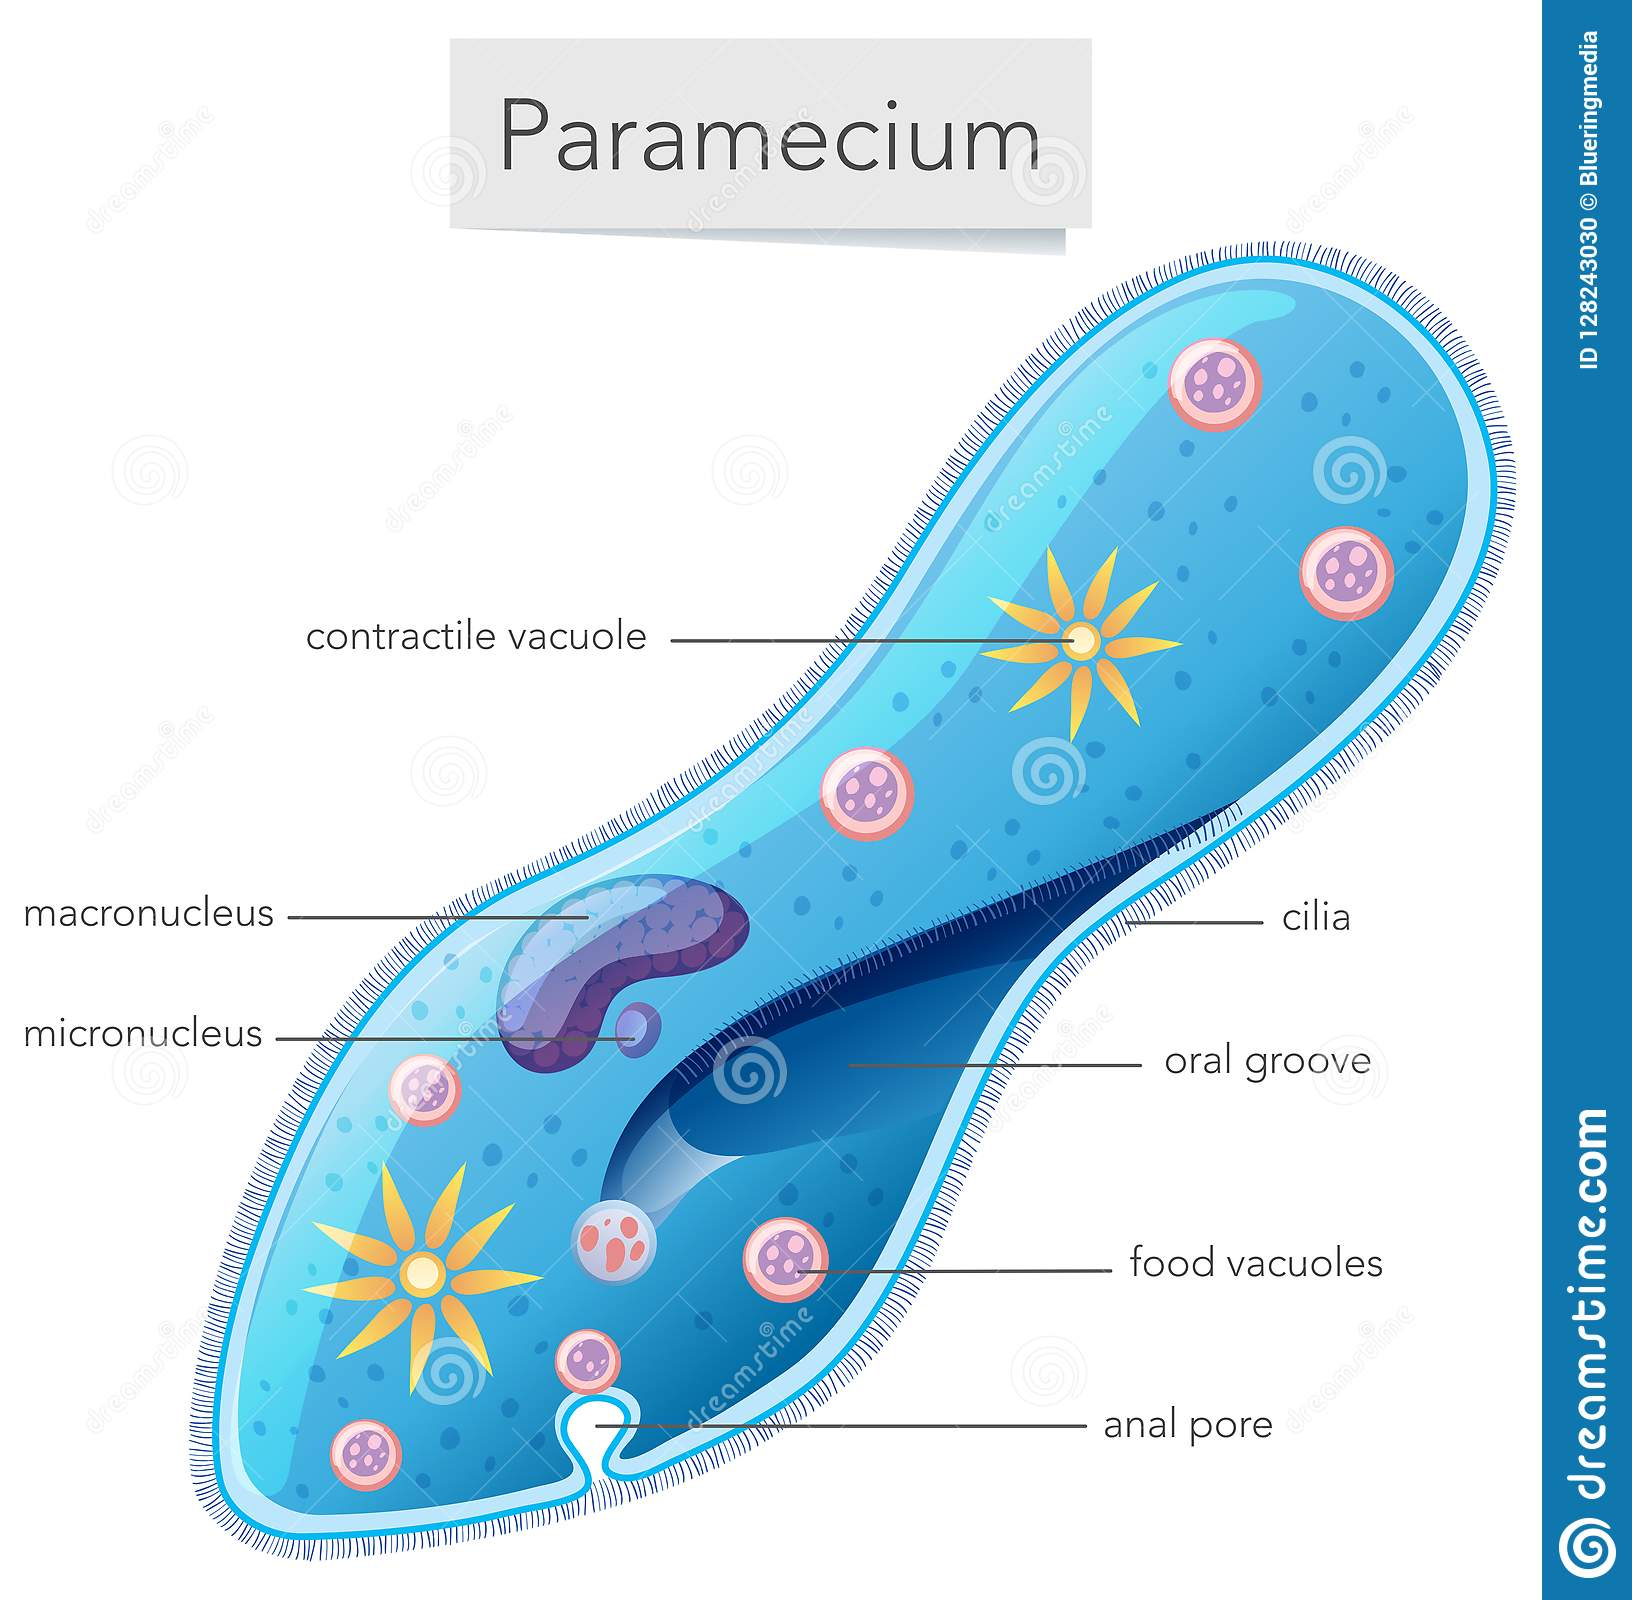 hight resolution of a paramecium diagram on white background